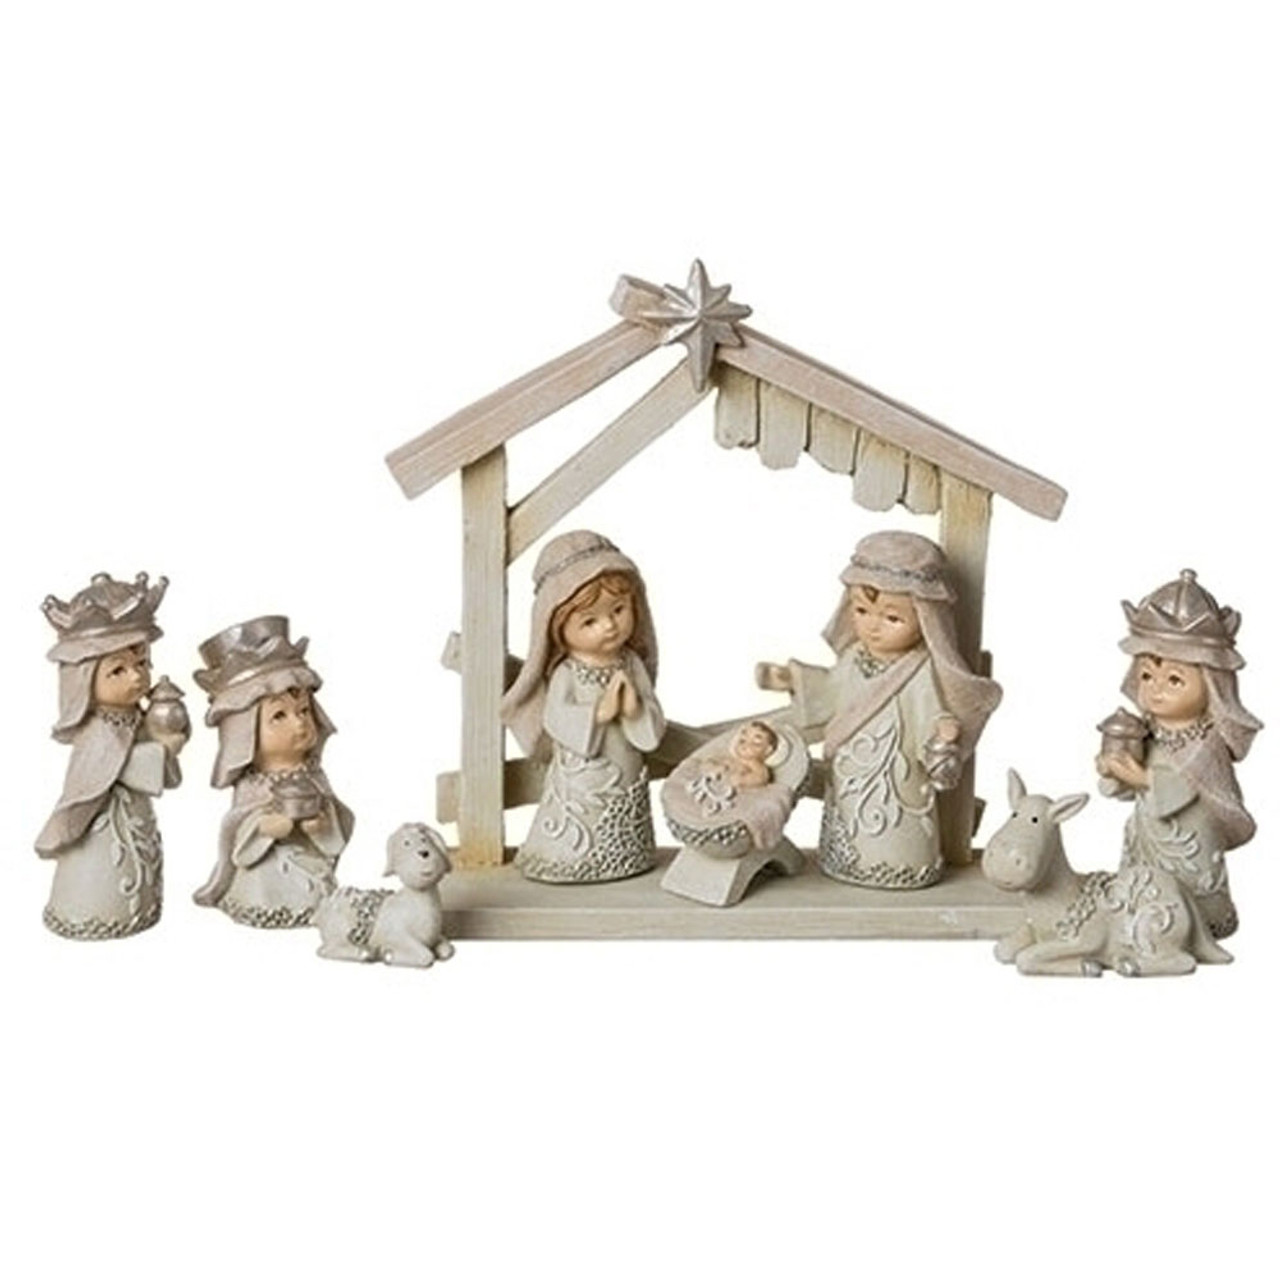 Pageant Nativity Set 9PCS 3IN High